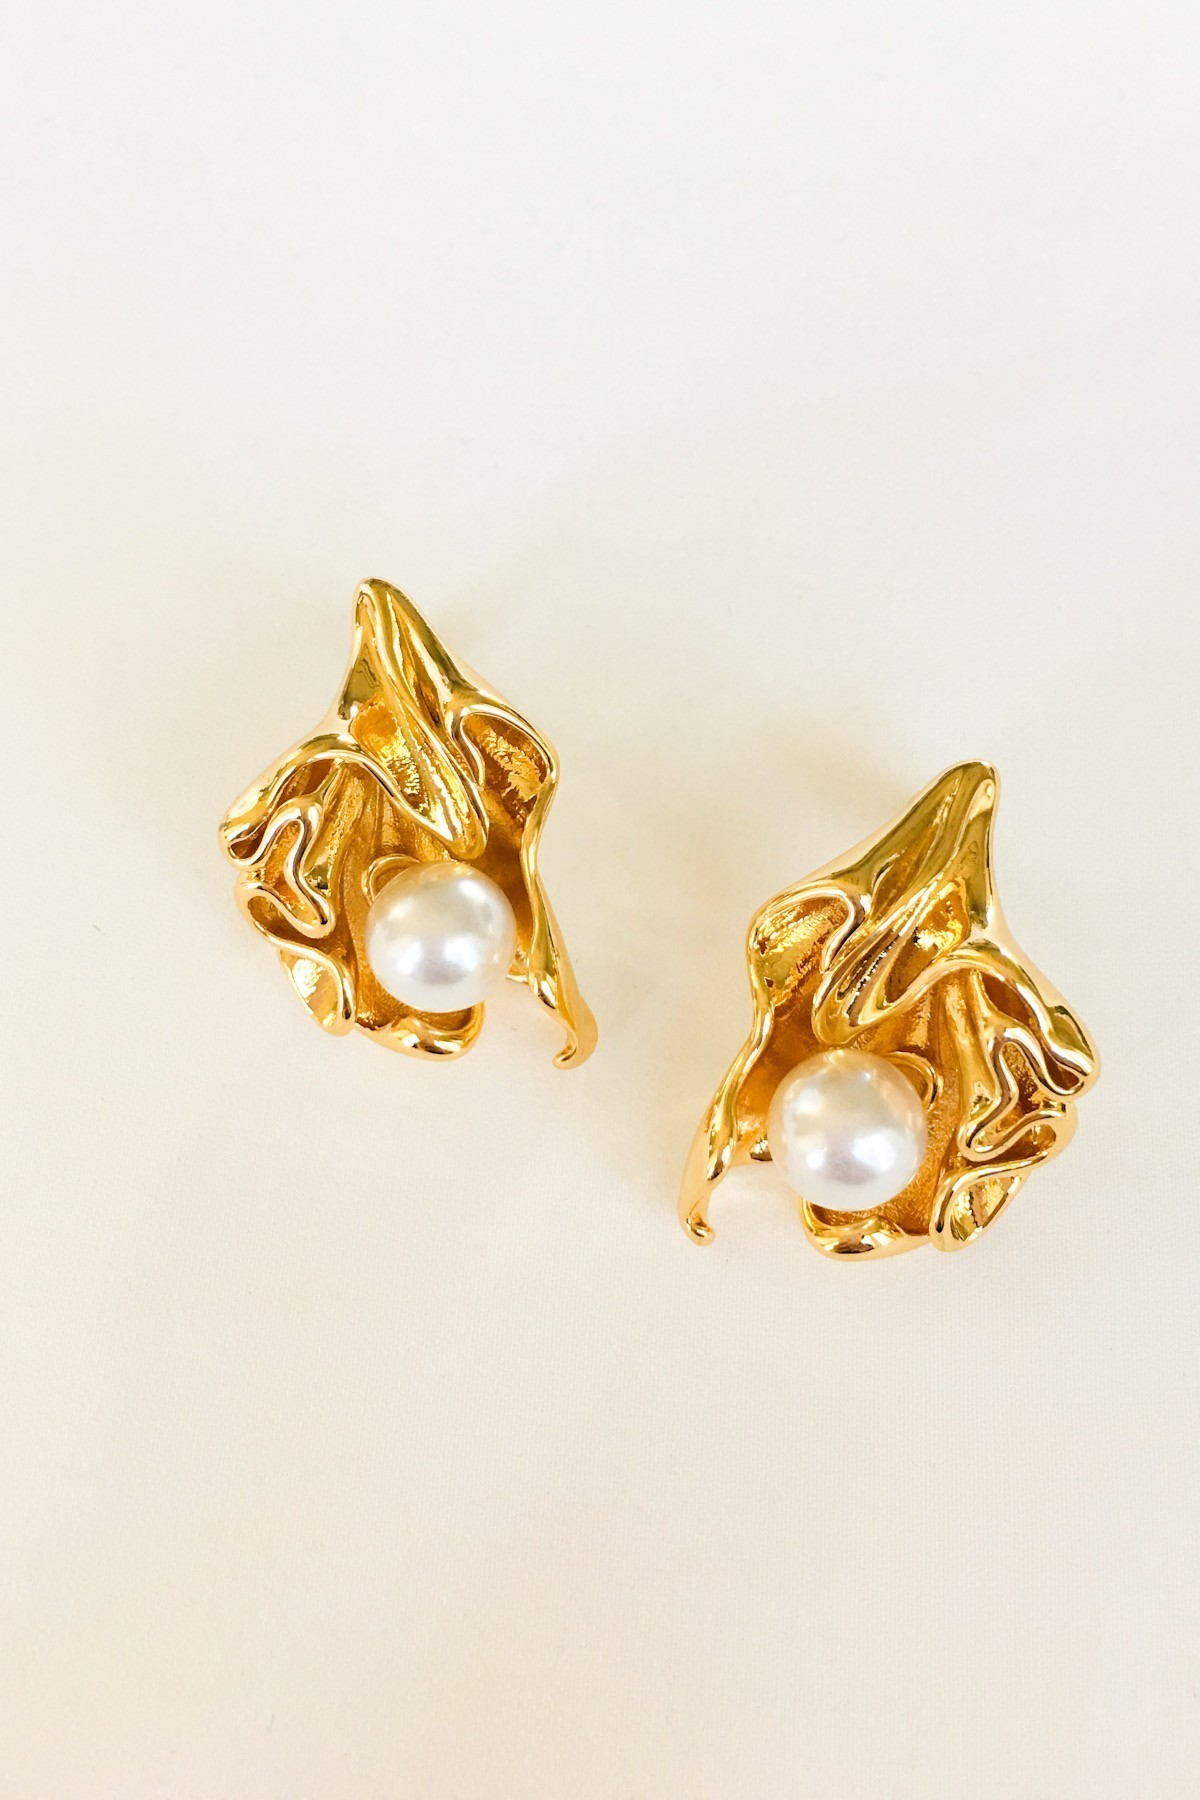 SKYE San Francisco SF California shop ethical sustainable modern minimalist luxury women French Parisian chic jewelry Spring 2020 Marseille 18K Gold Pearl Earrings 2